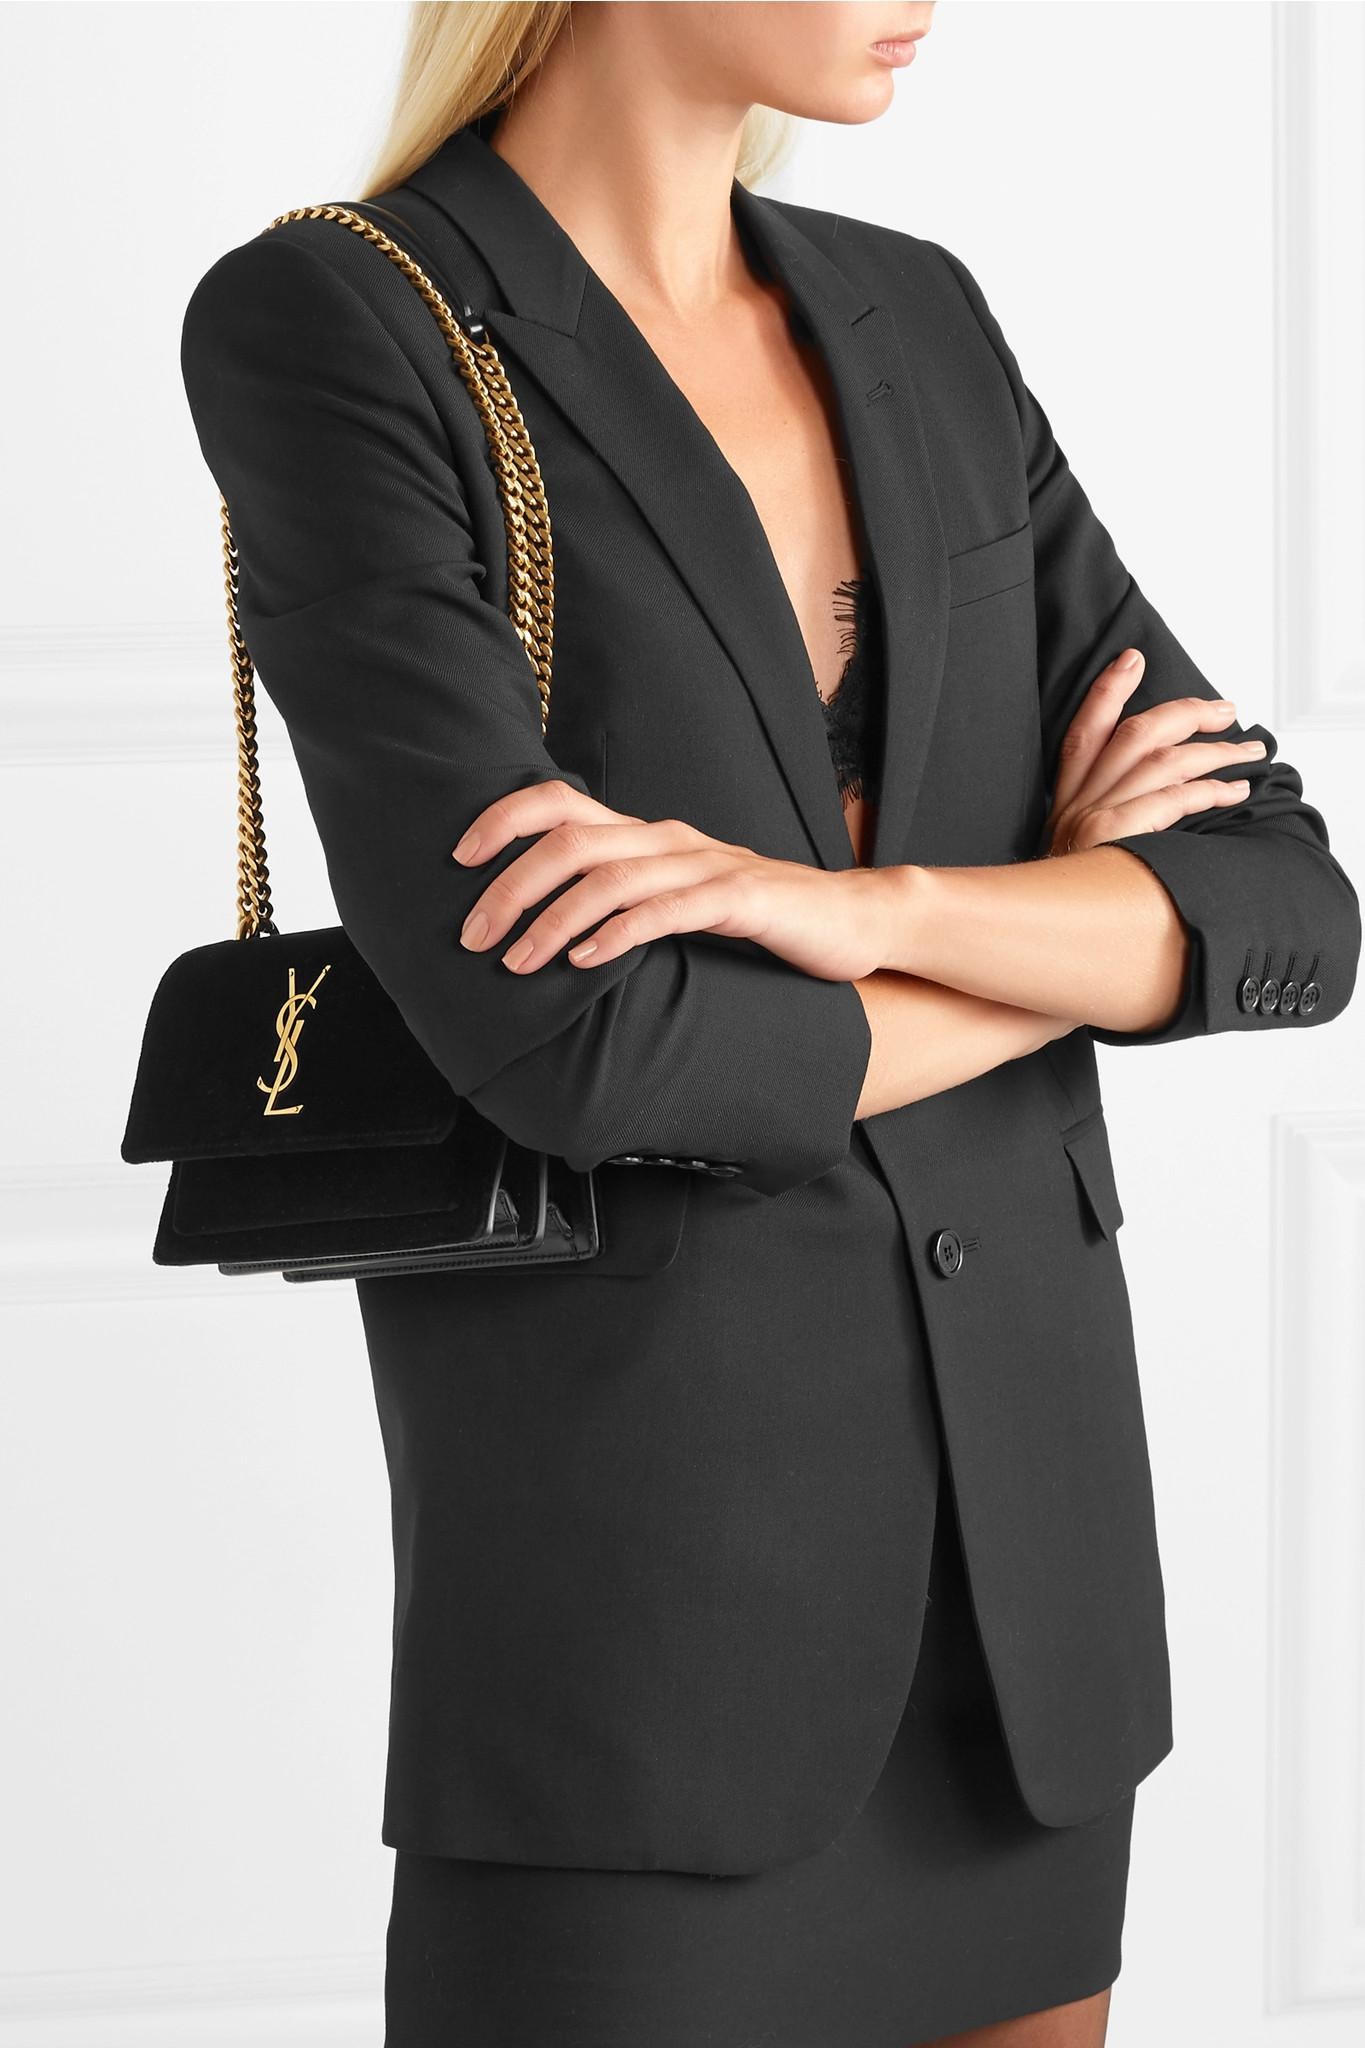 78570a049 Saint Laurent Sunset Small Velvet And Leather Shoulder Bag in Black ...